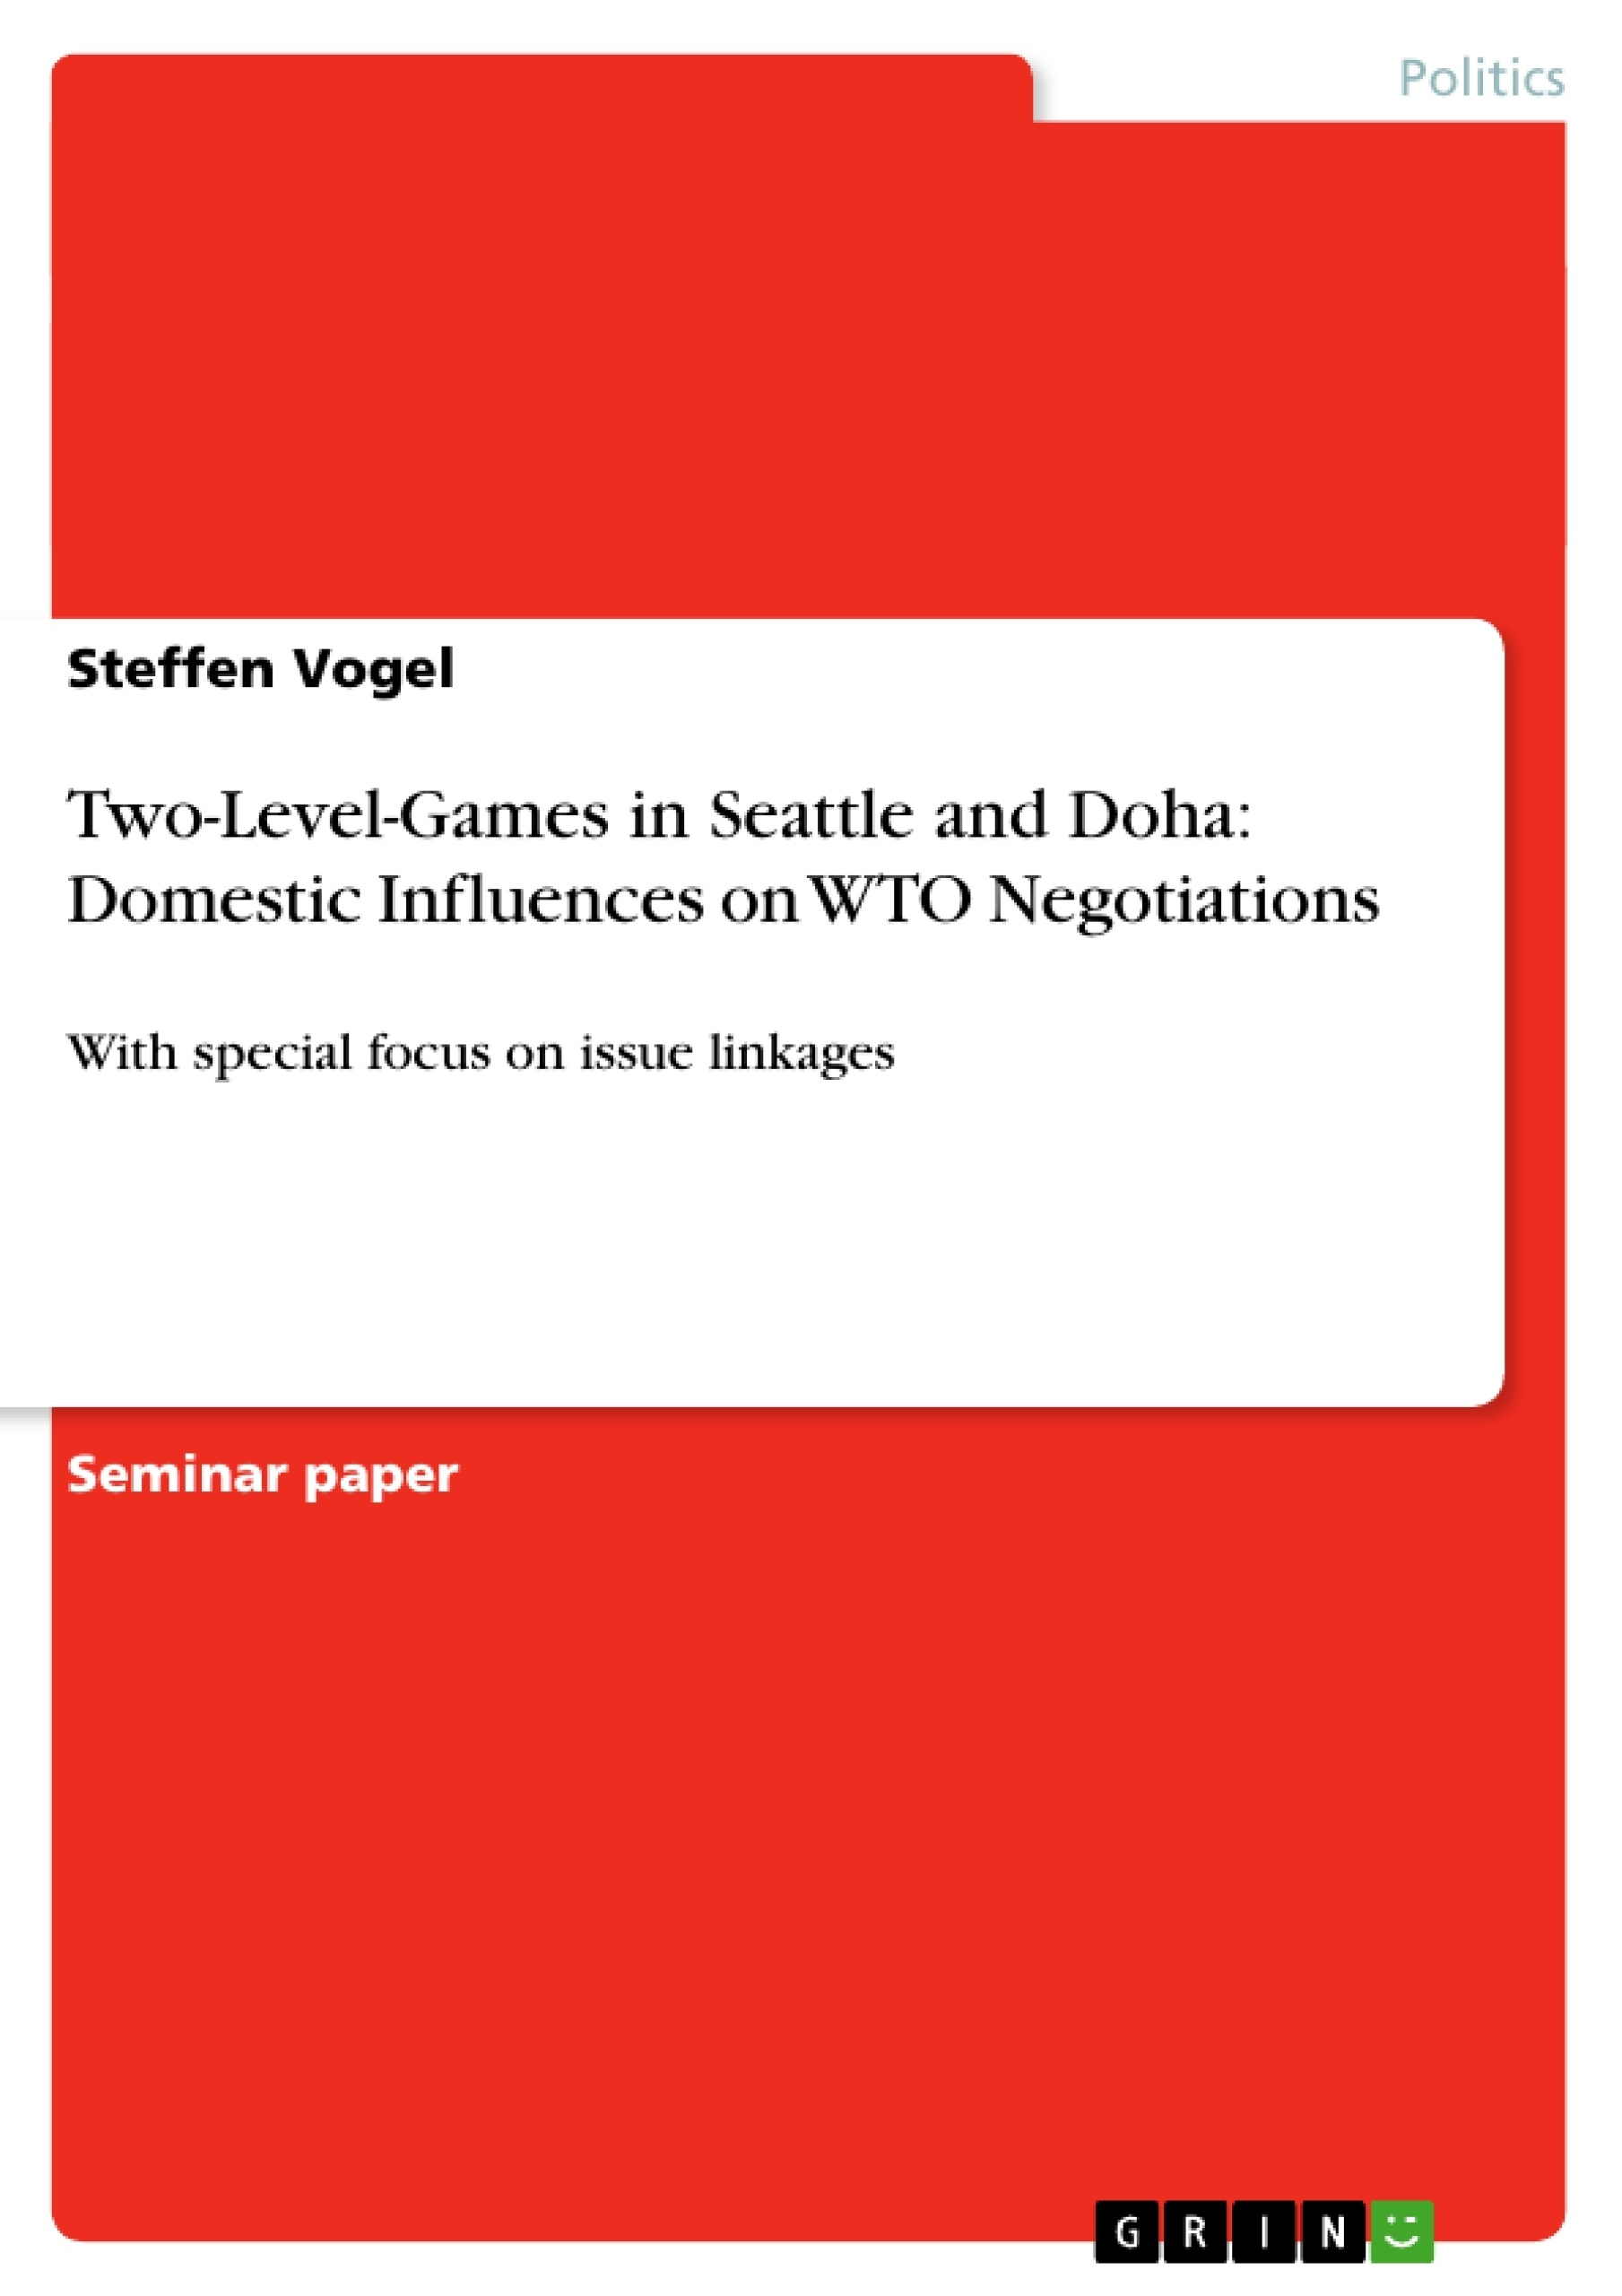 Title: Two-Level-Games in Seattle and Doha: Domestic Influences on WTO Negotiations